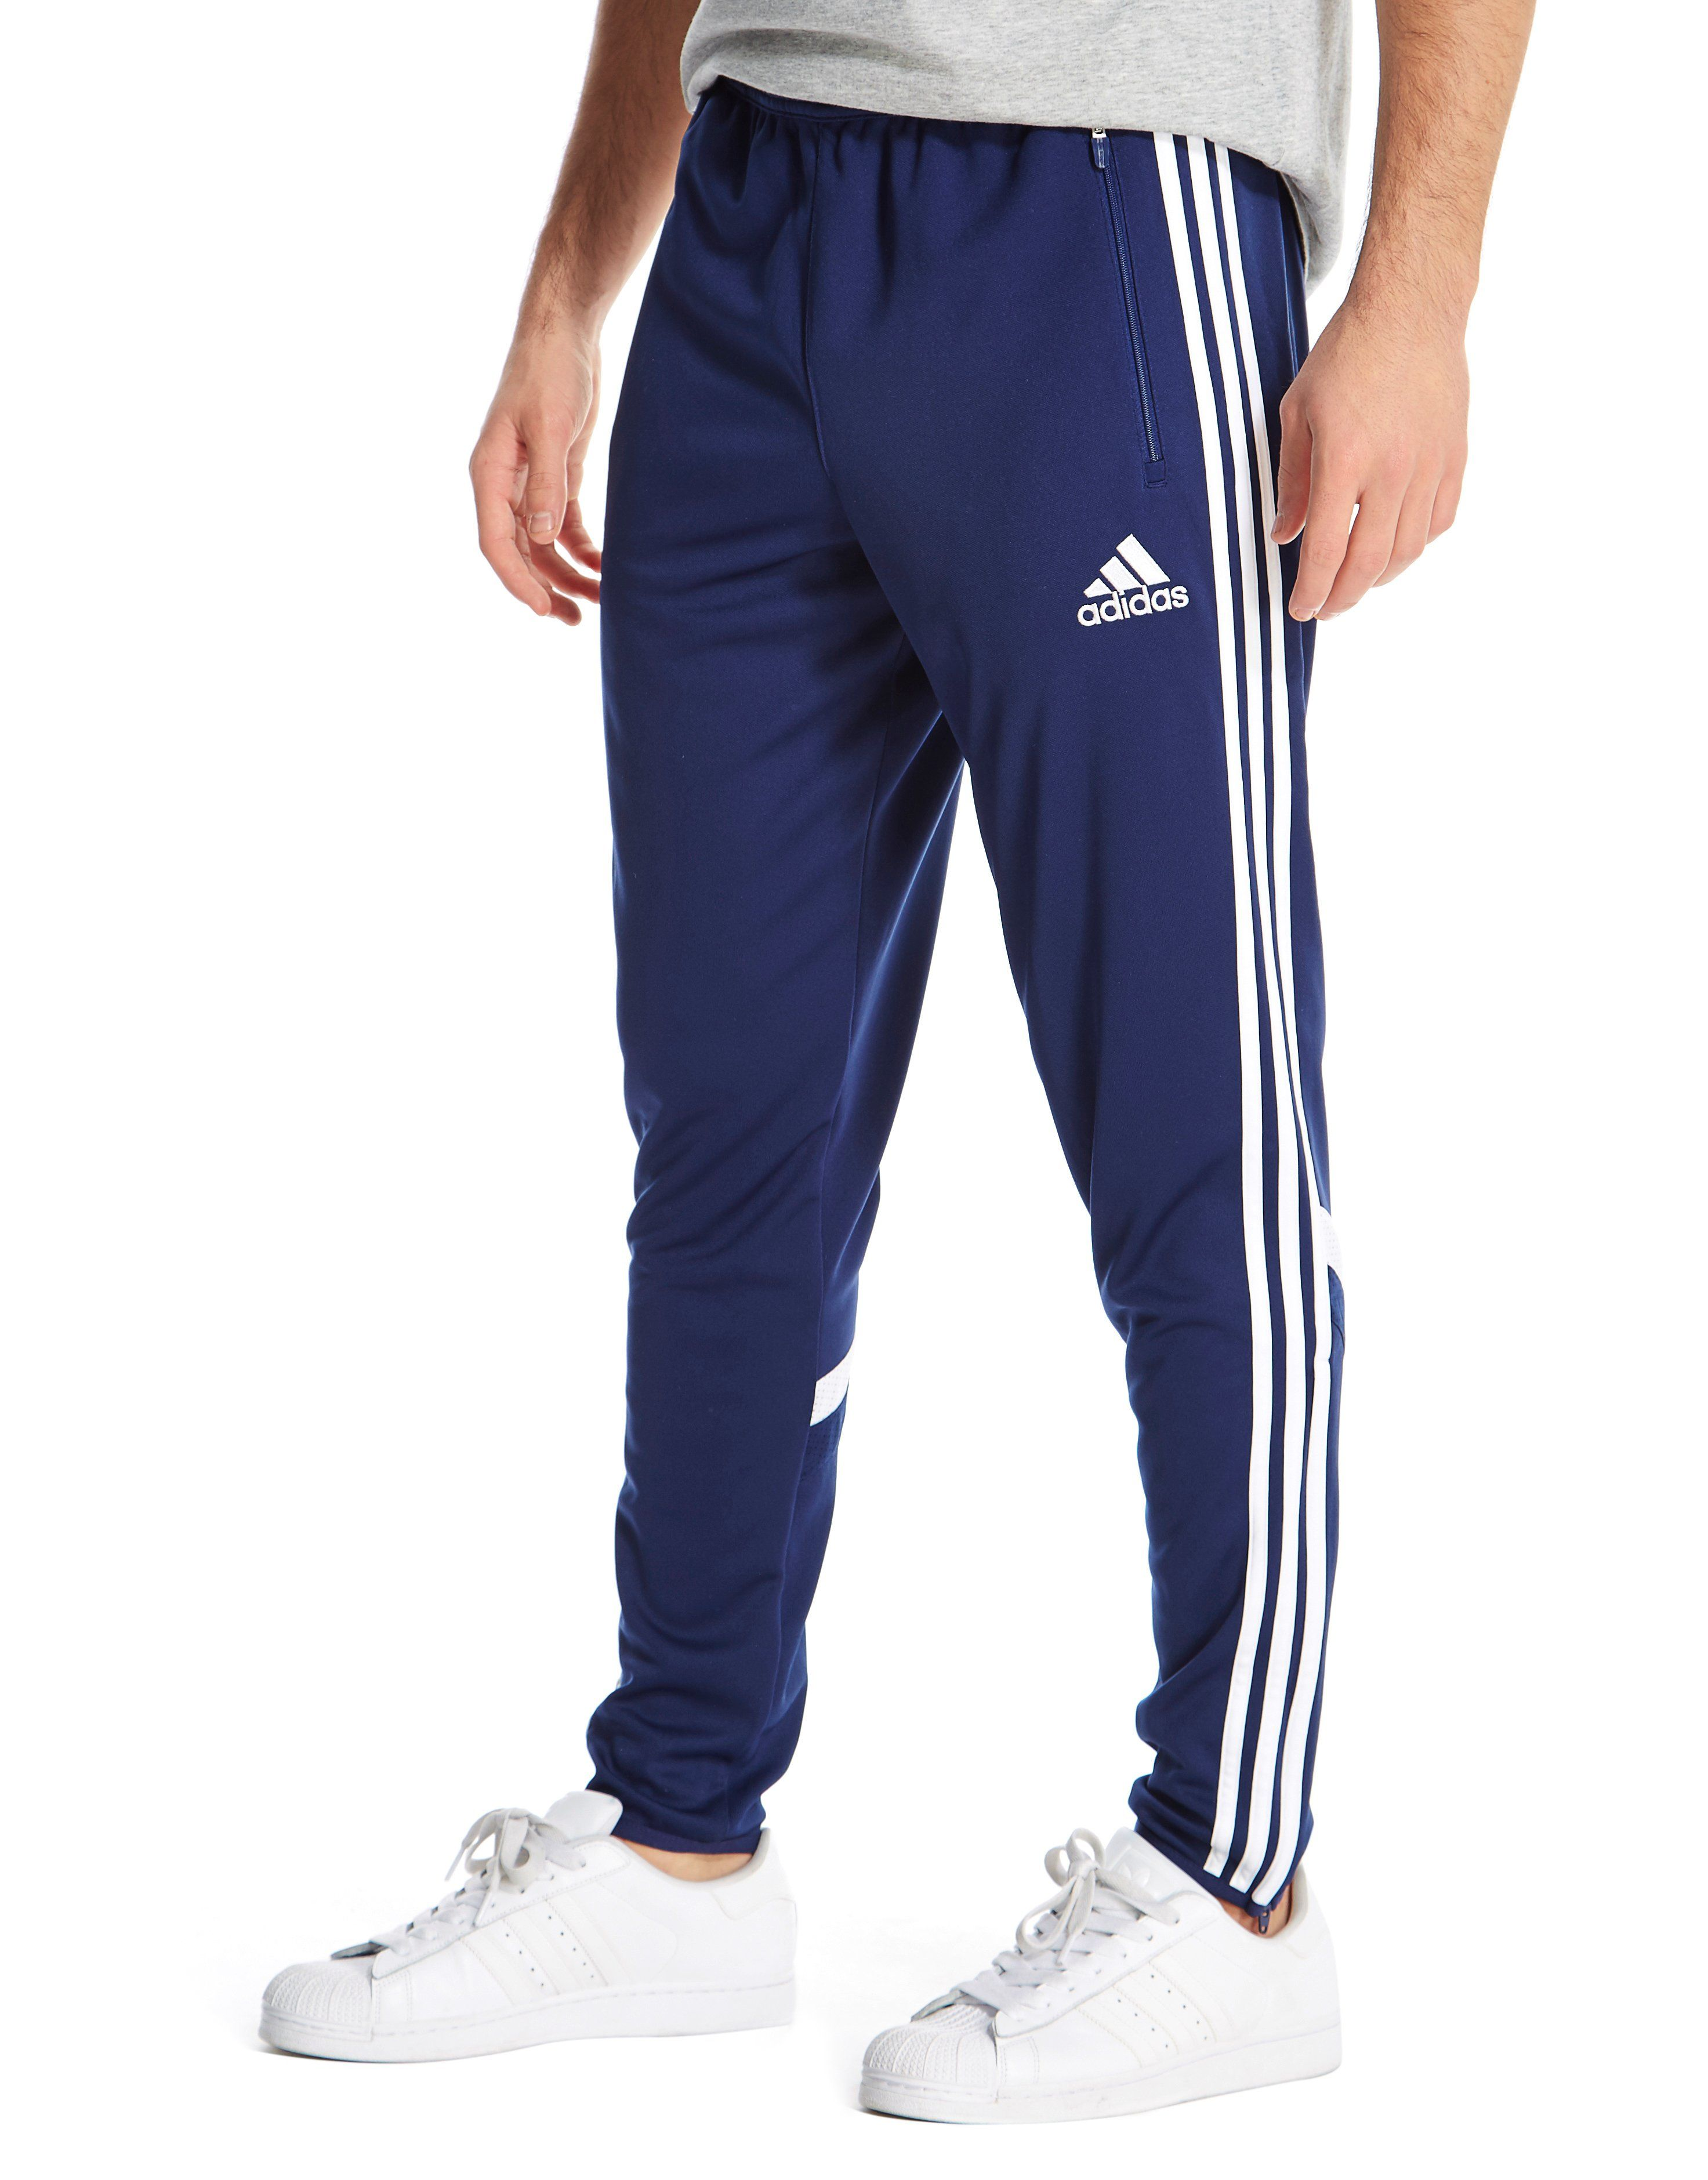 Adidas cono poly training pants jd sports